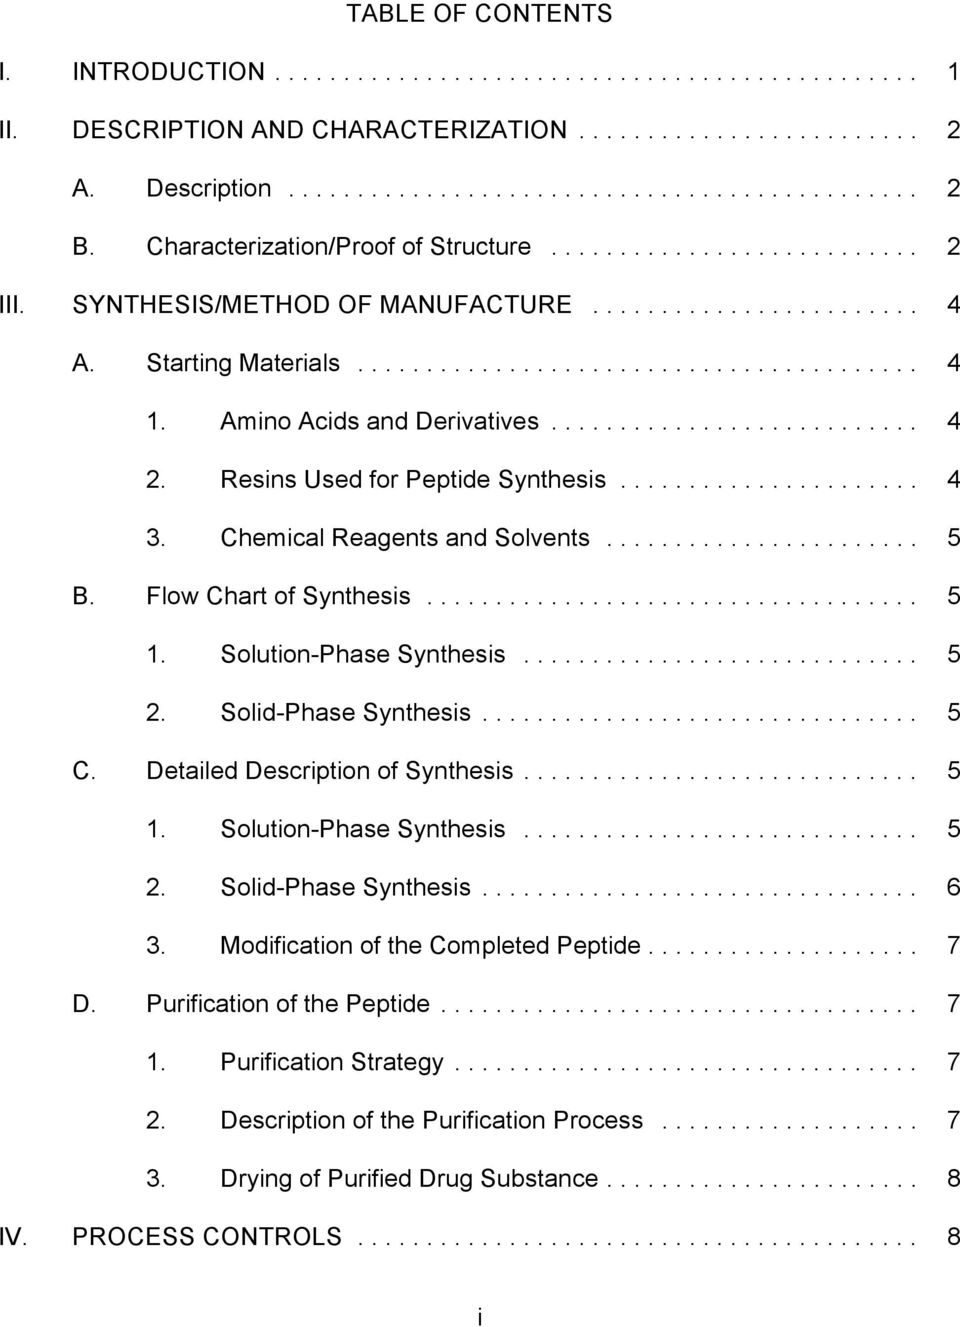 Solution-Phase Synthesis... 5 2. Solid-Phase Synthesis... 5 C. Detailed Description of Synthesis... 5 1. Solution-Phase Synthesis... 5 2. Solid-Phase Synthesis... 6 3.